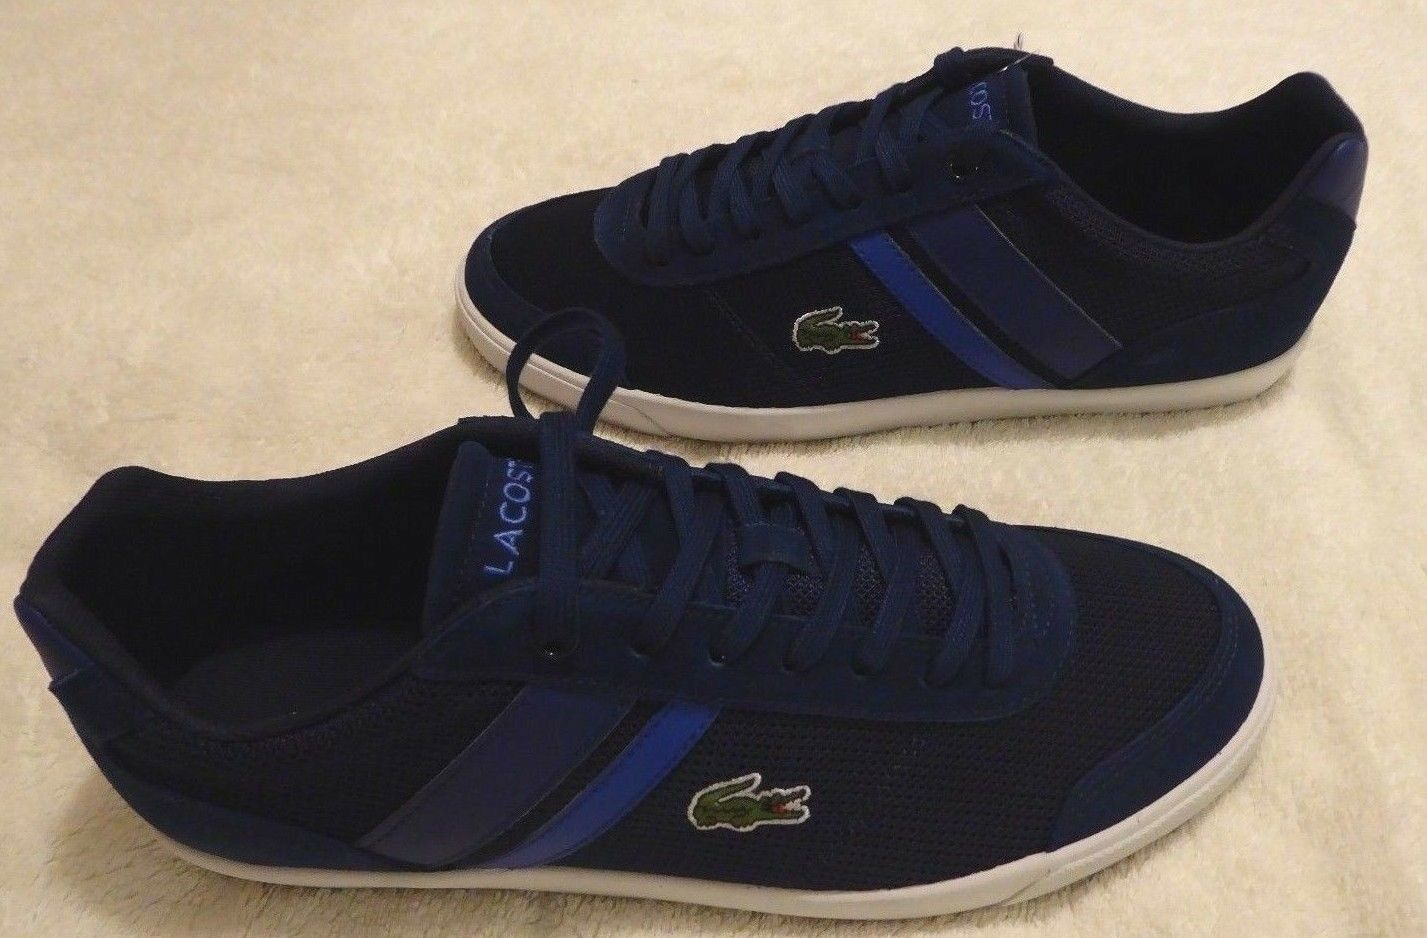 3104300e21d NEW BOXED MEN S LACOSTE COMBA TRAINERS SHOES - SIZE 7   FREE POST NAVY -  ovopjr2861-Men s Trainers